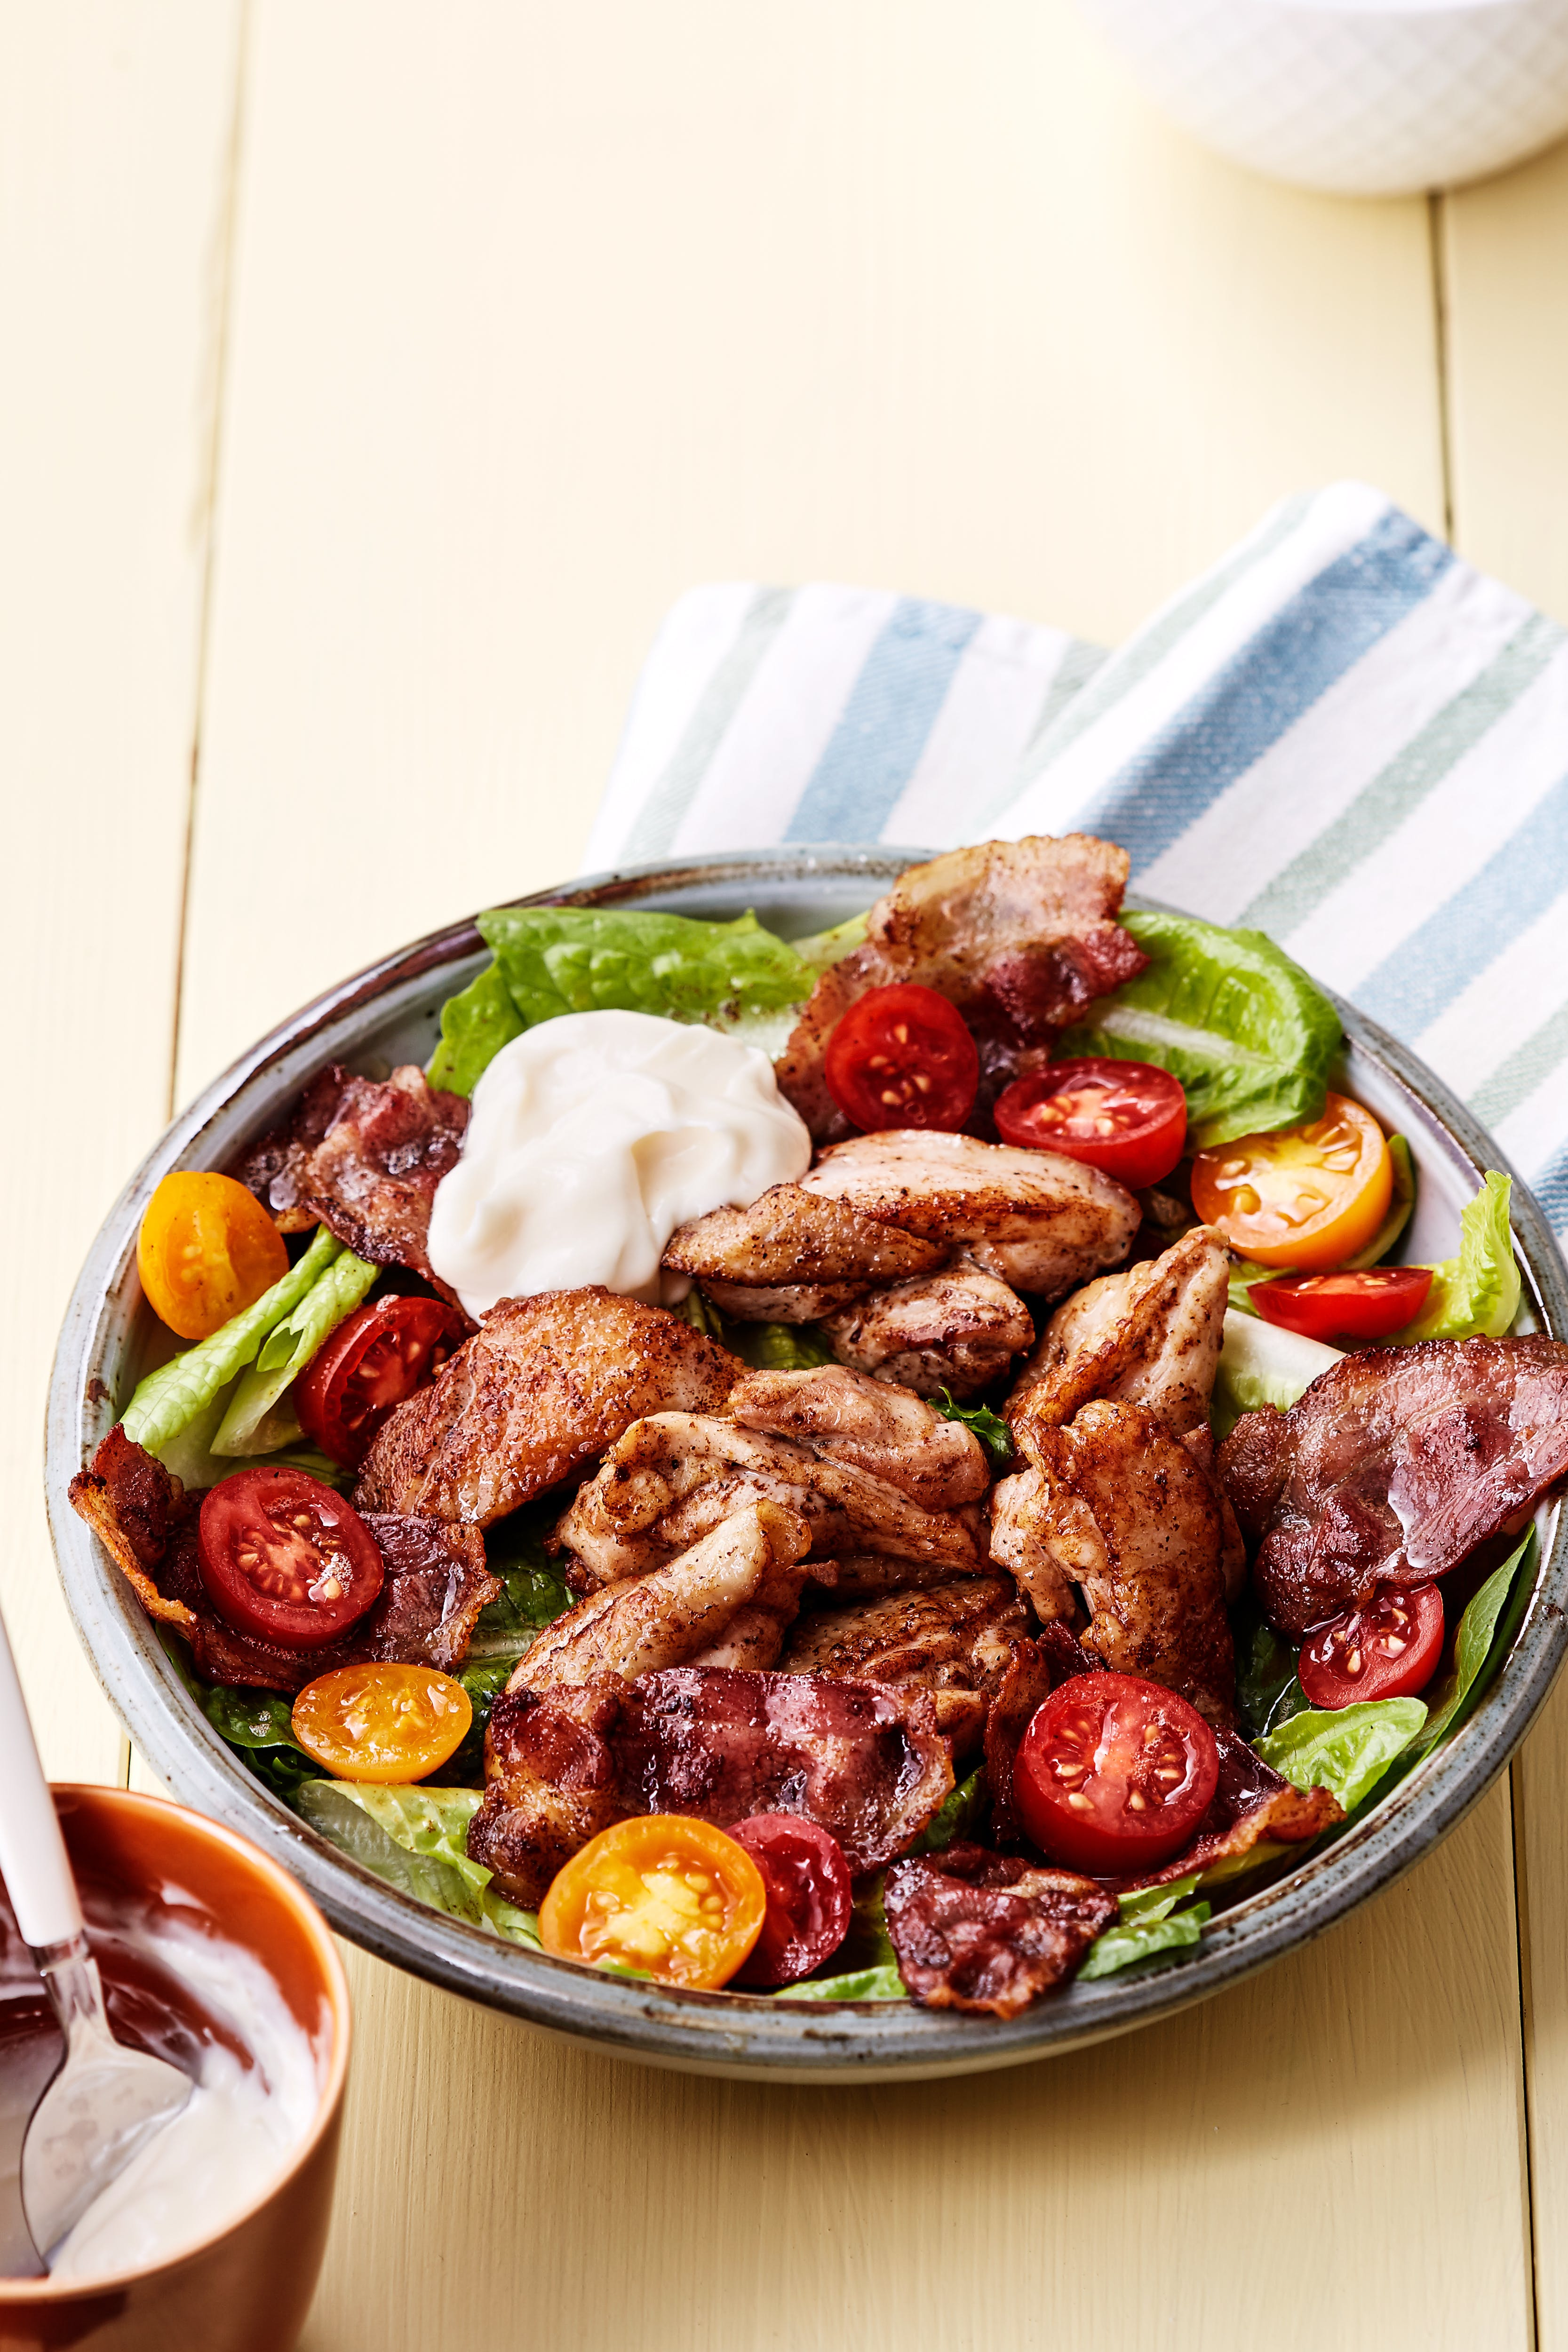 Ensalada de pollo y tocino